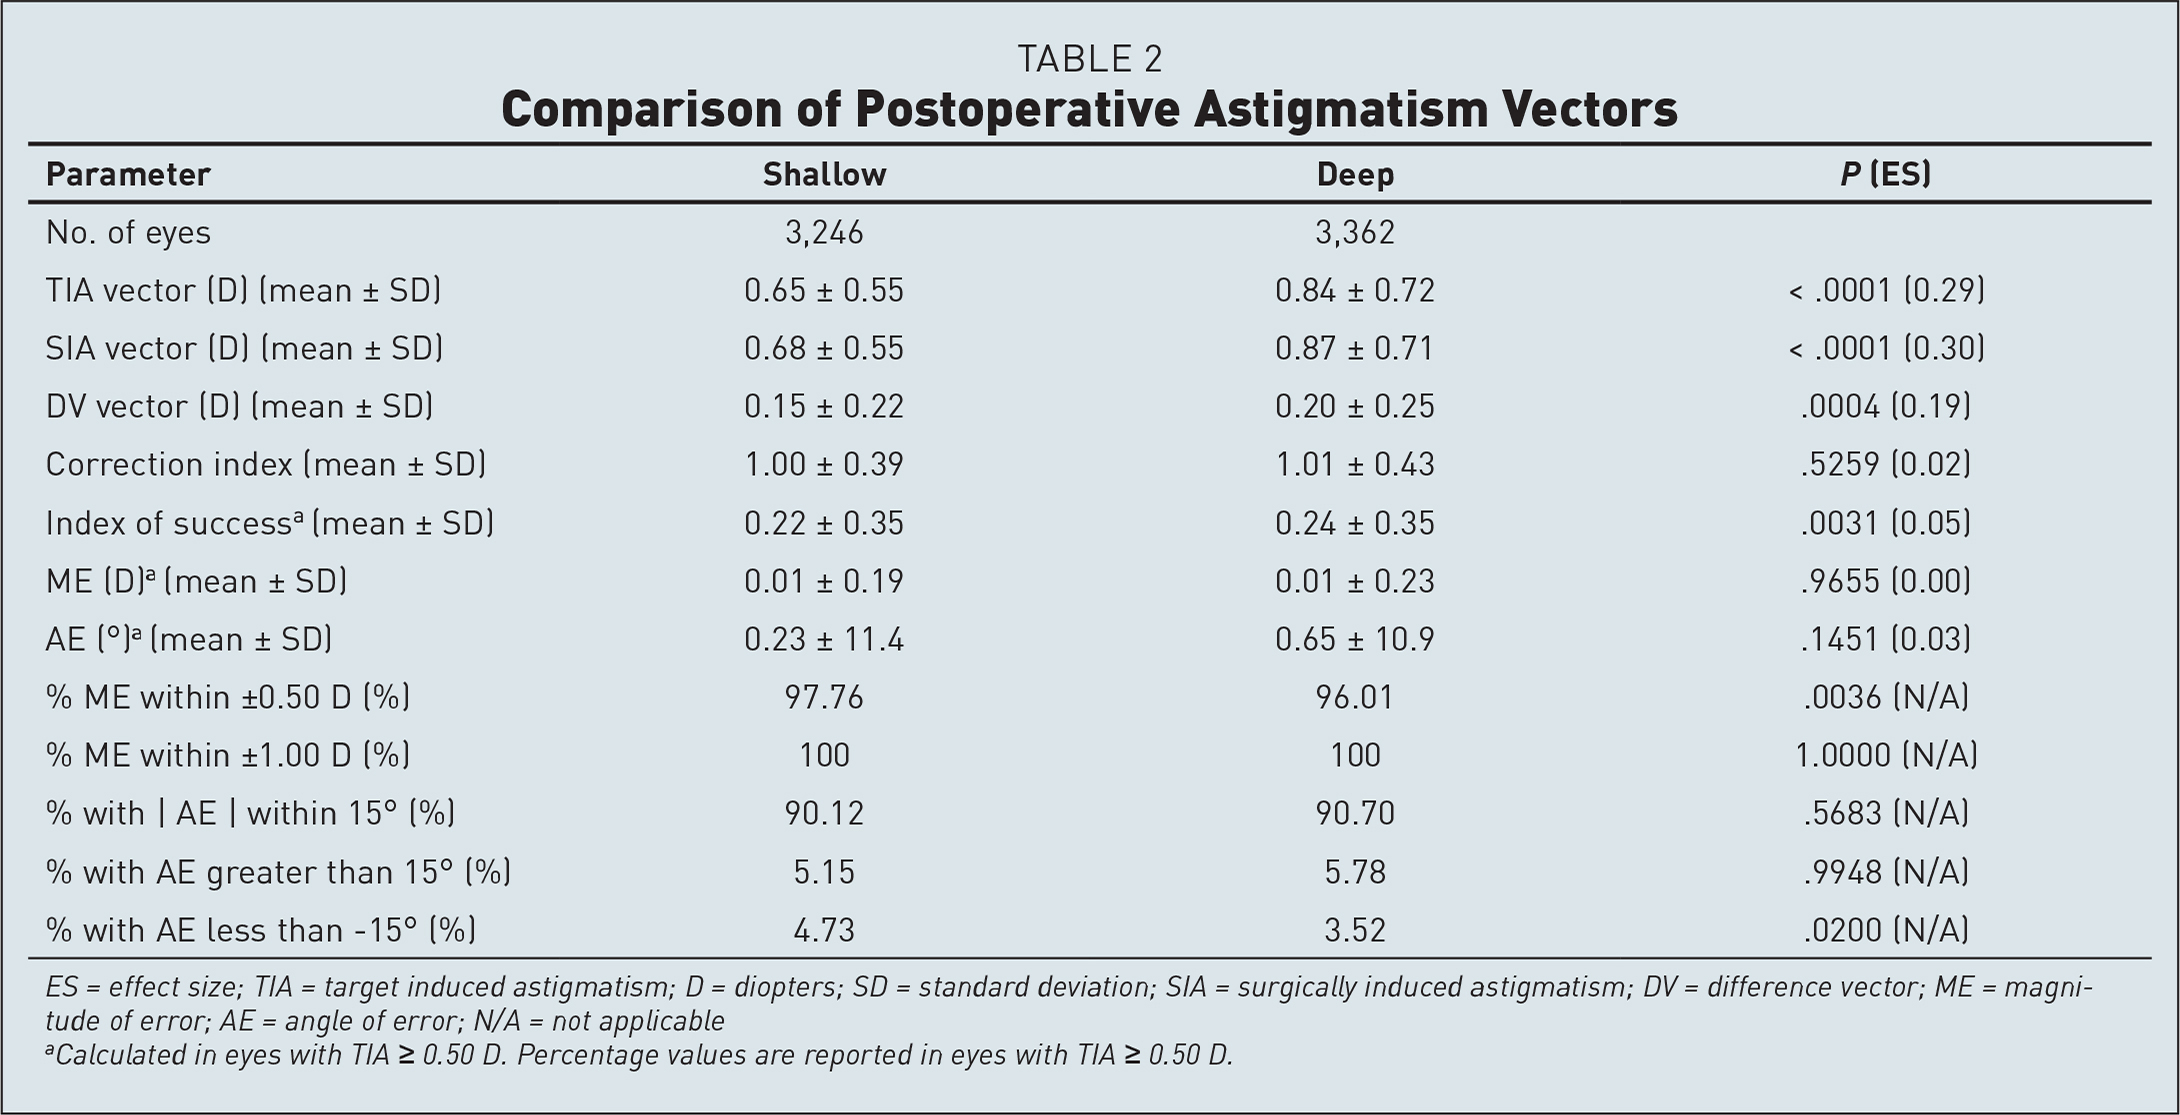 Comparison of Postoperative Astigmatism Vectors